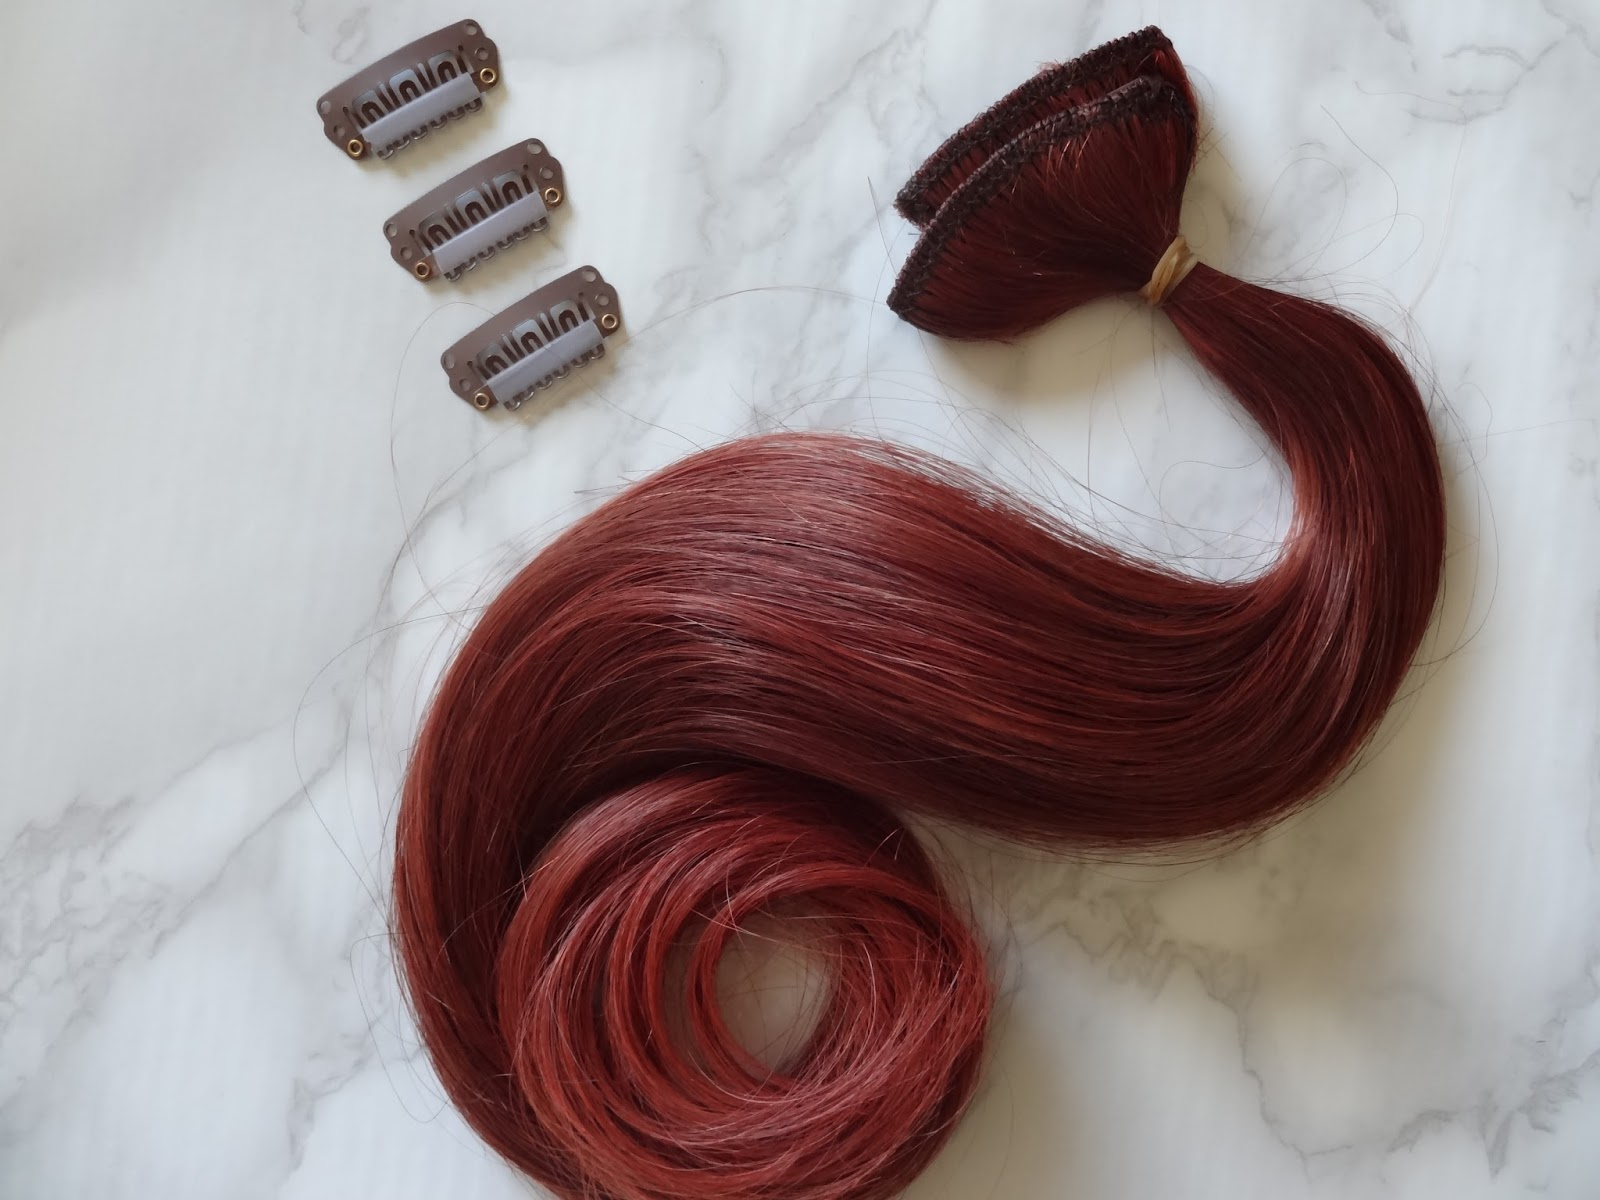 Review irresistible me hair extensions she is mary beauty if youre just starting with hair extensions and you want something great the silky touch clip ins extensions are the way to go pmusecretfo Images